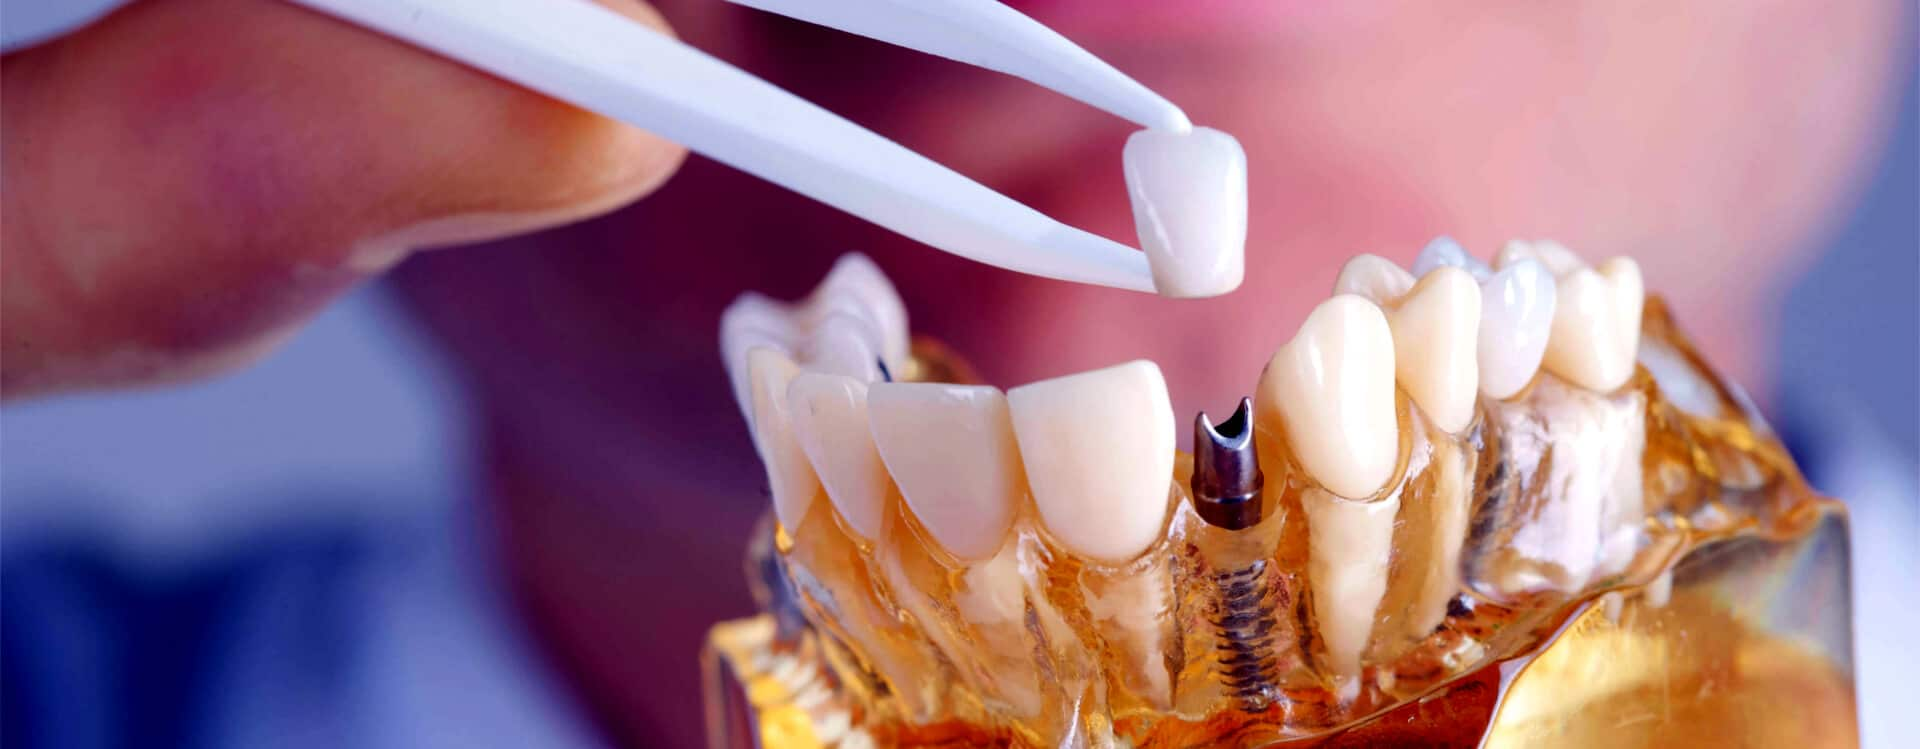 Best Dental Implants Treatment